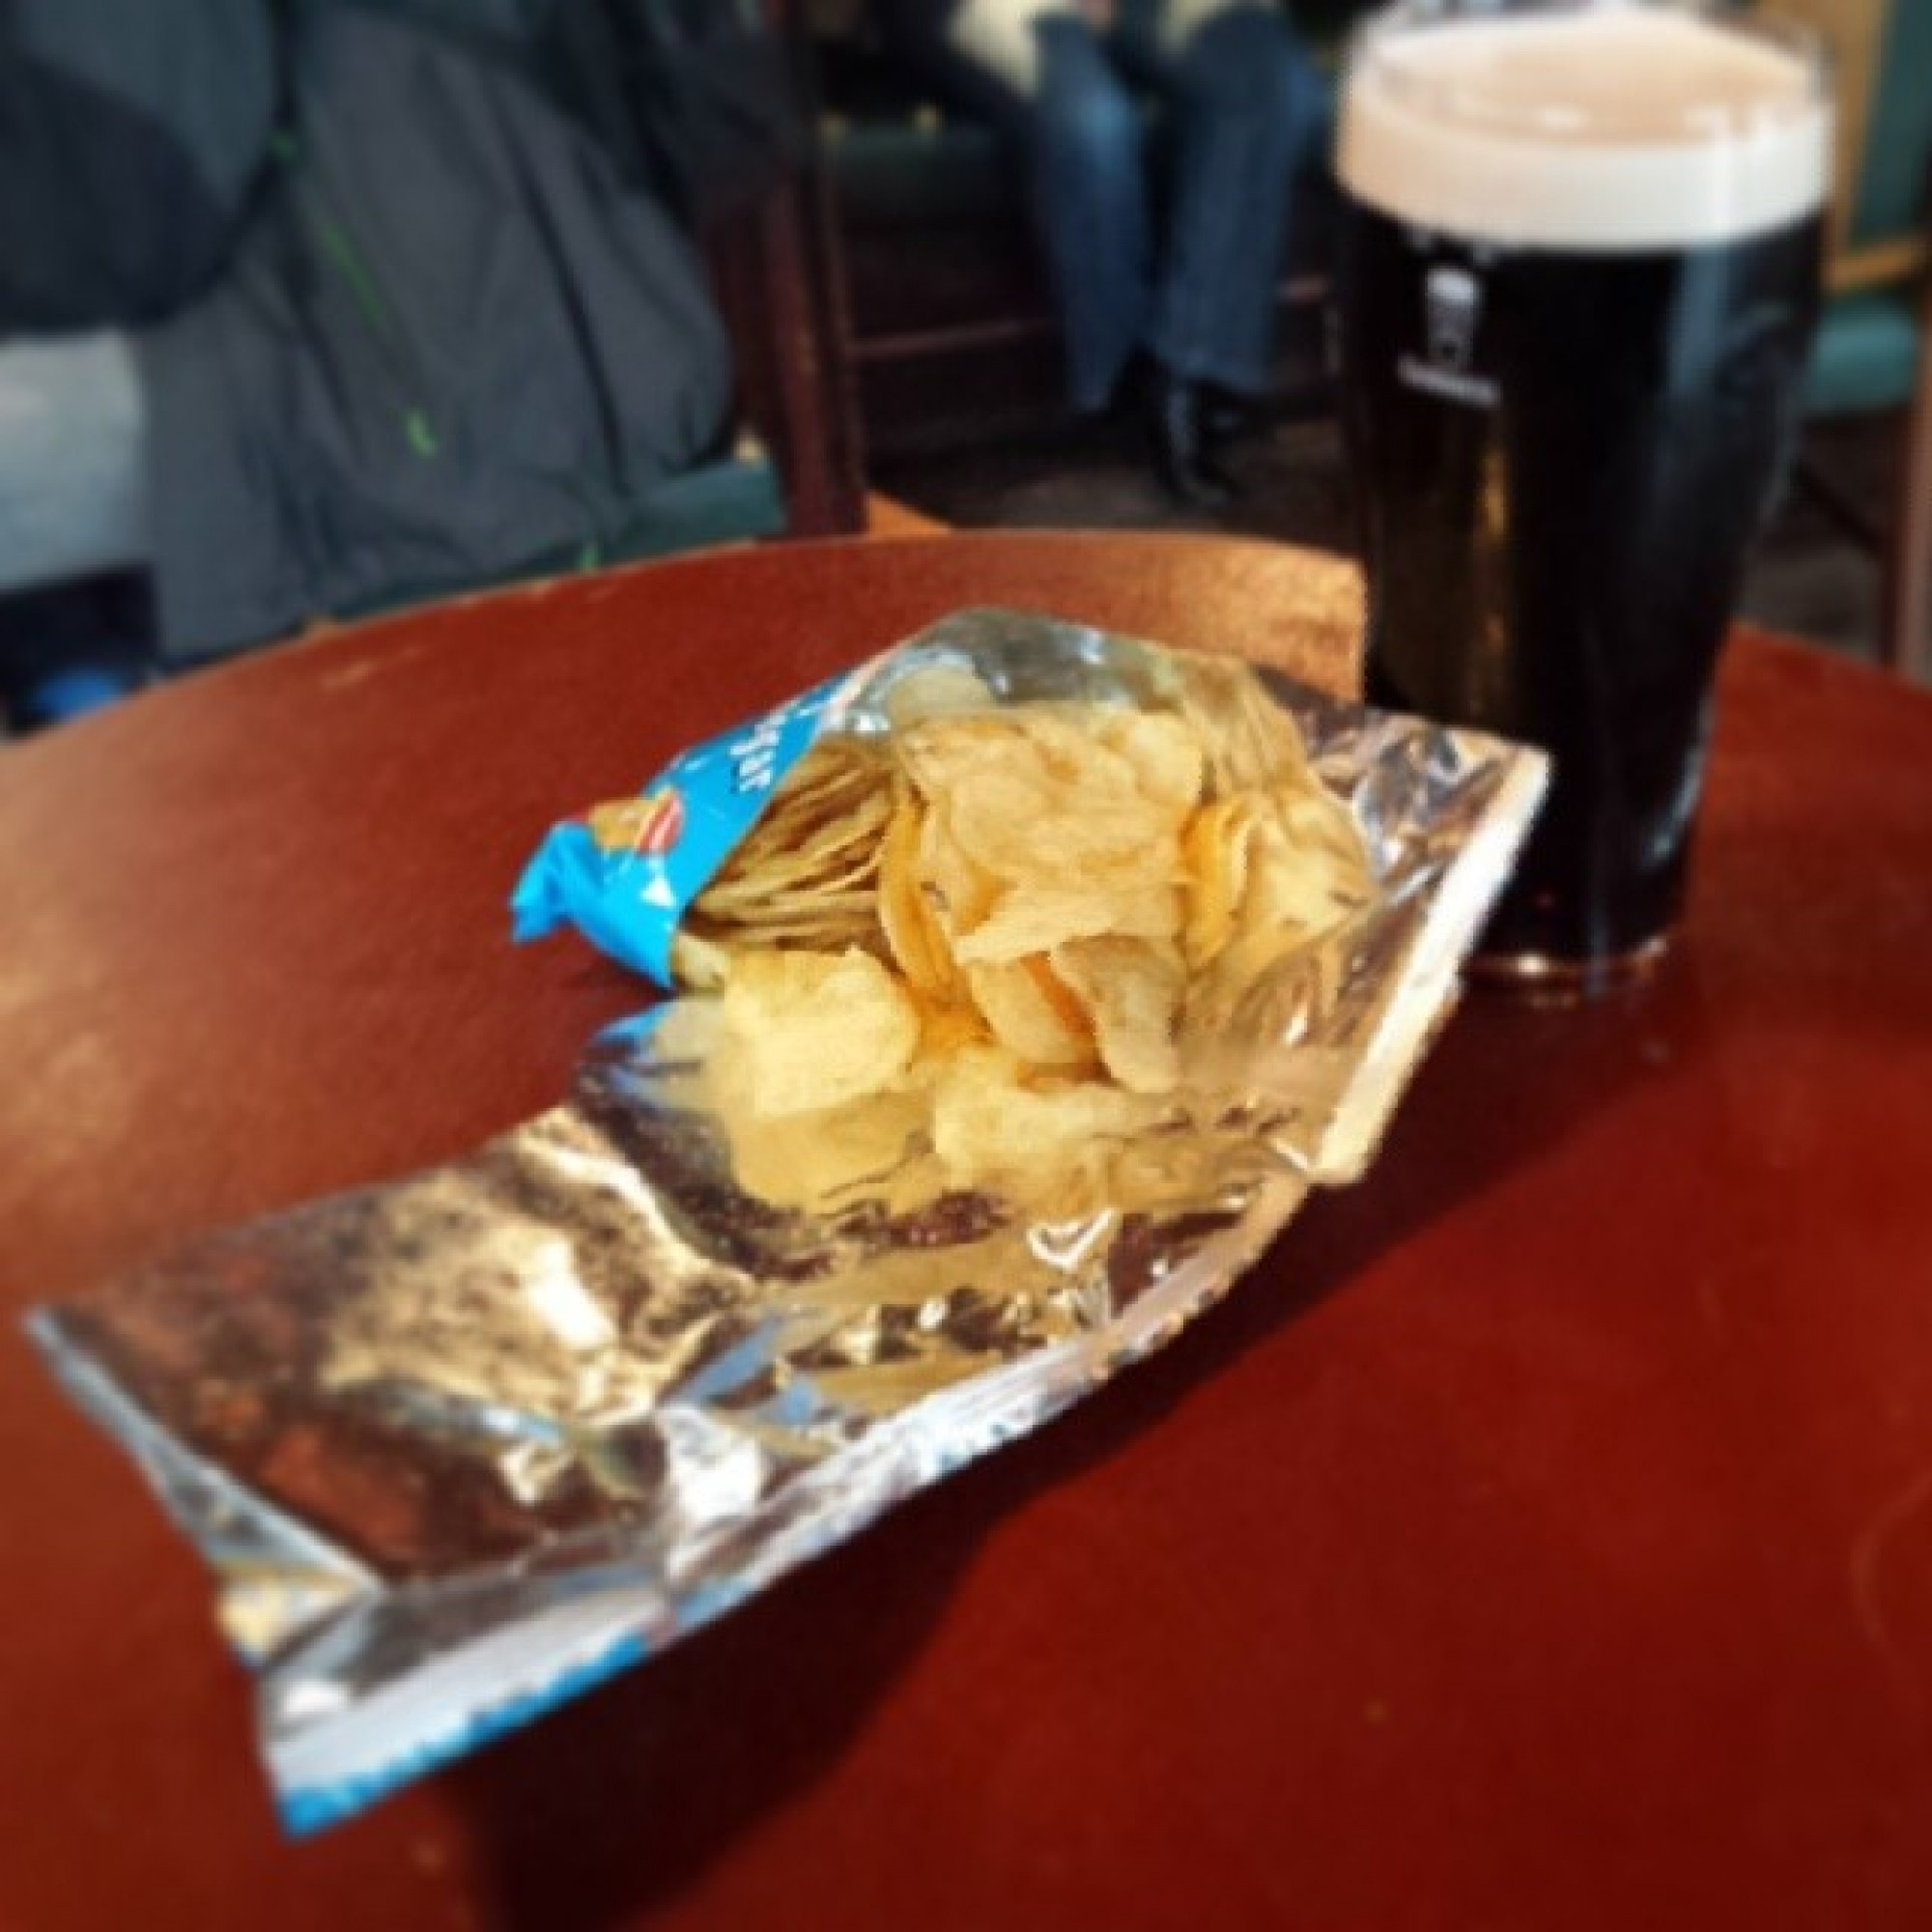 11 things the world needs to know about Irish pubs